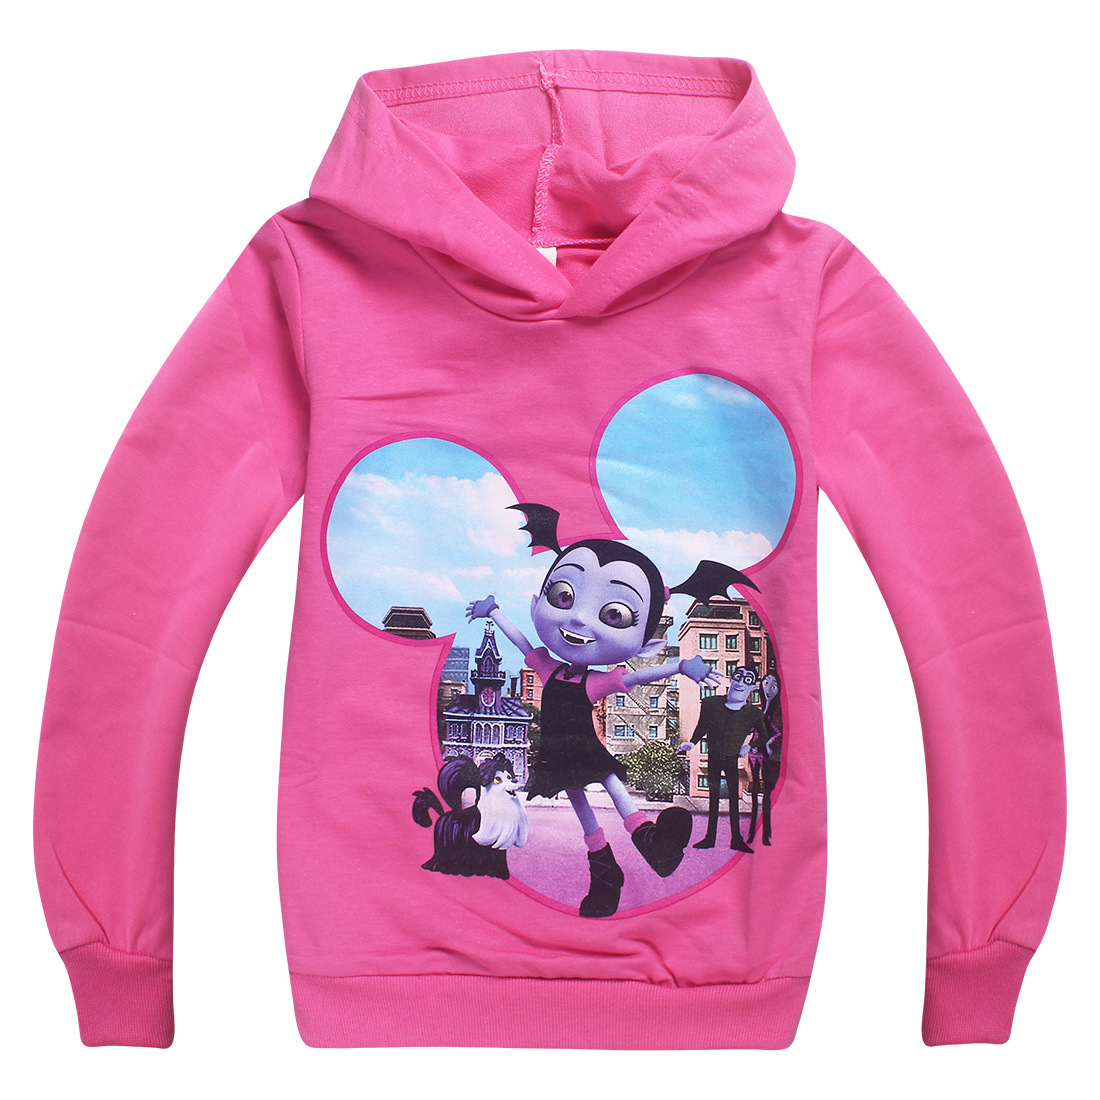 Roblox T-shirt For Kids Boys Sweayshirt For Girls Clothing Red Nose Day Costume Vampirina Hoodied Sweatshirt Long Sleeve Tees